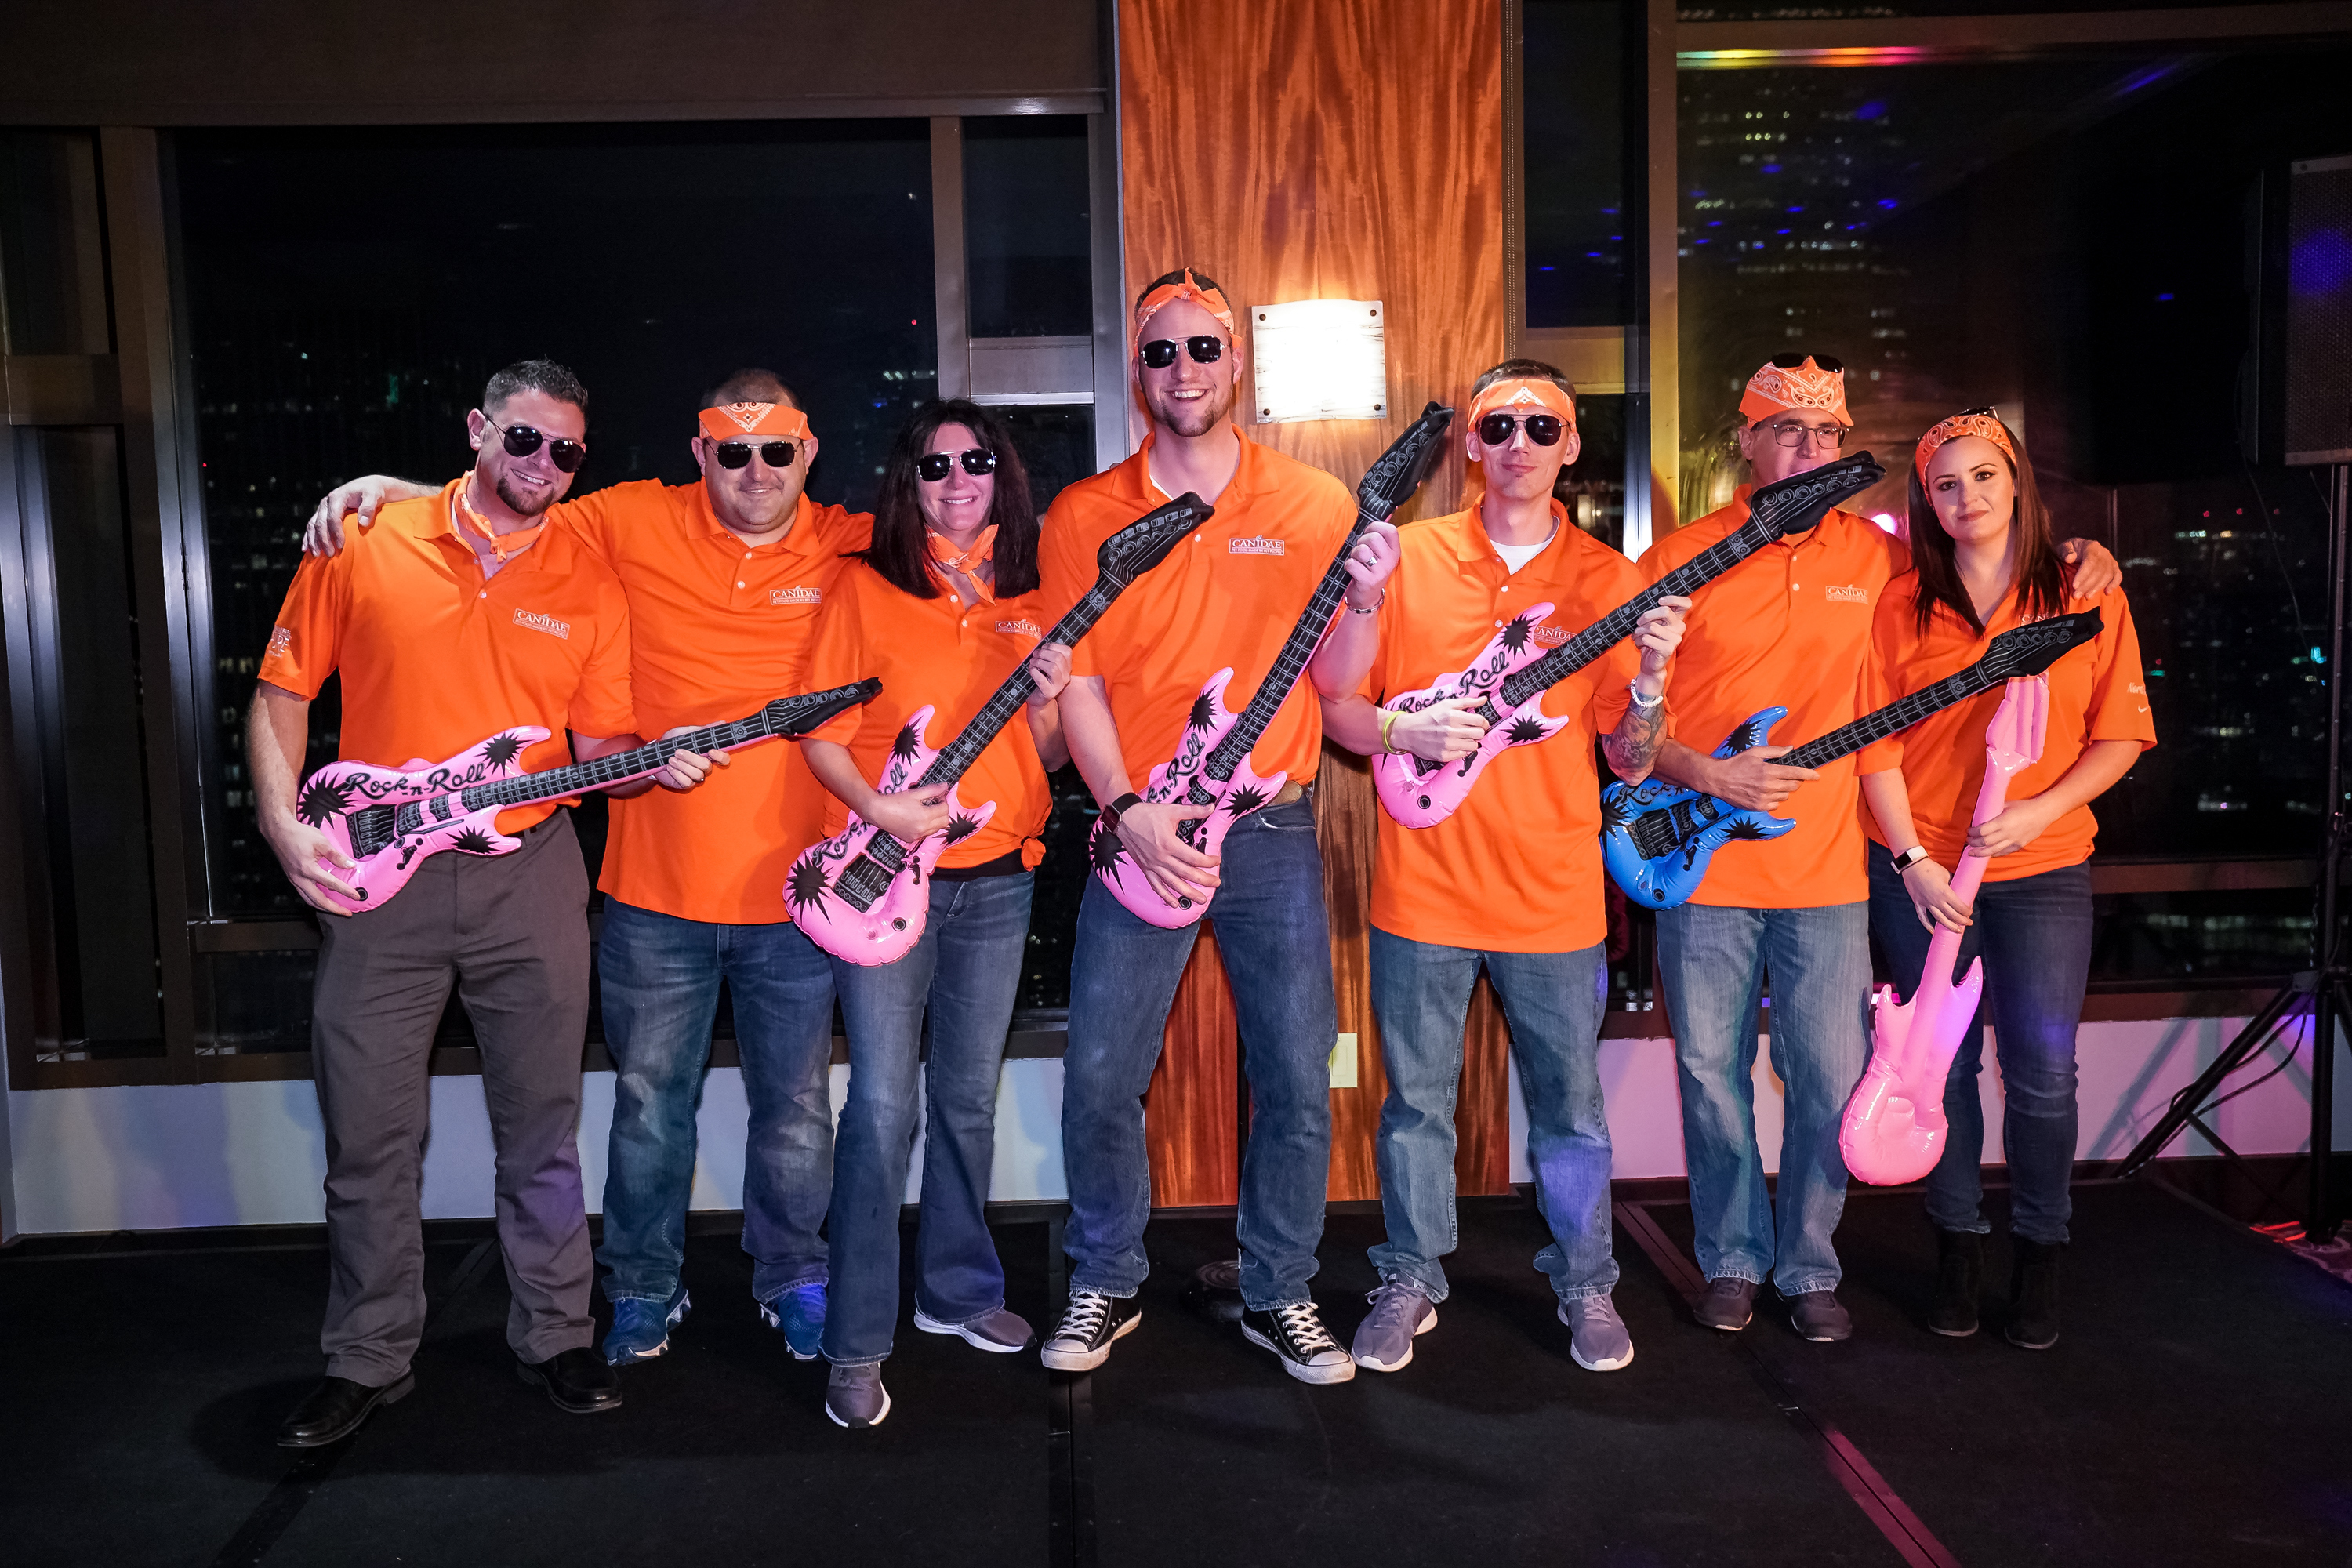 Orange guitars